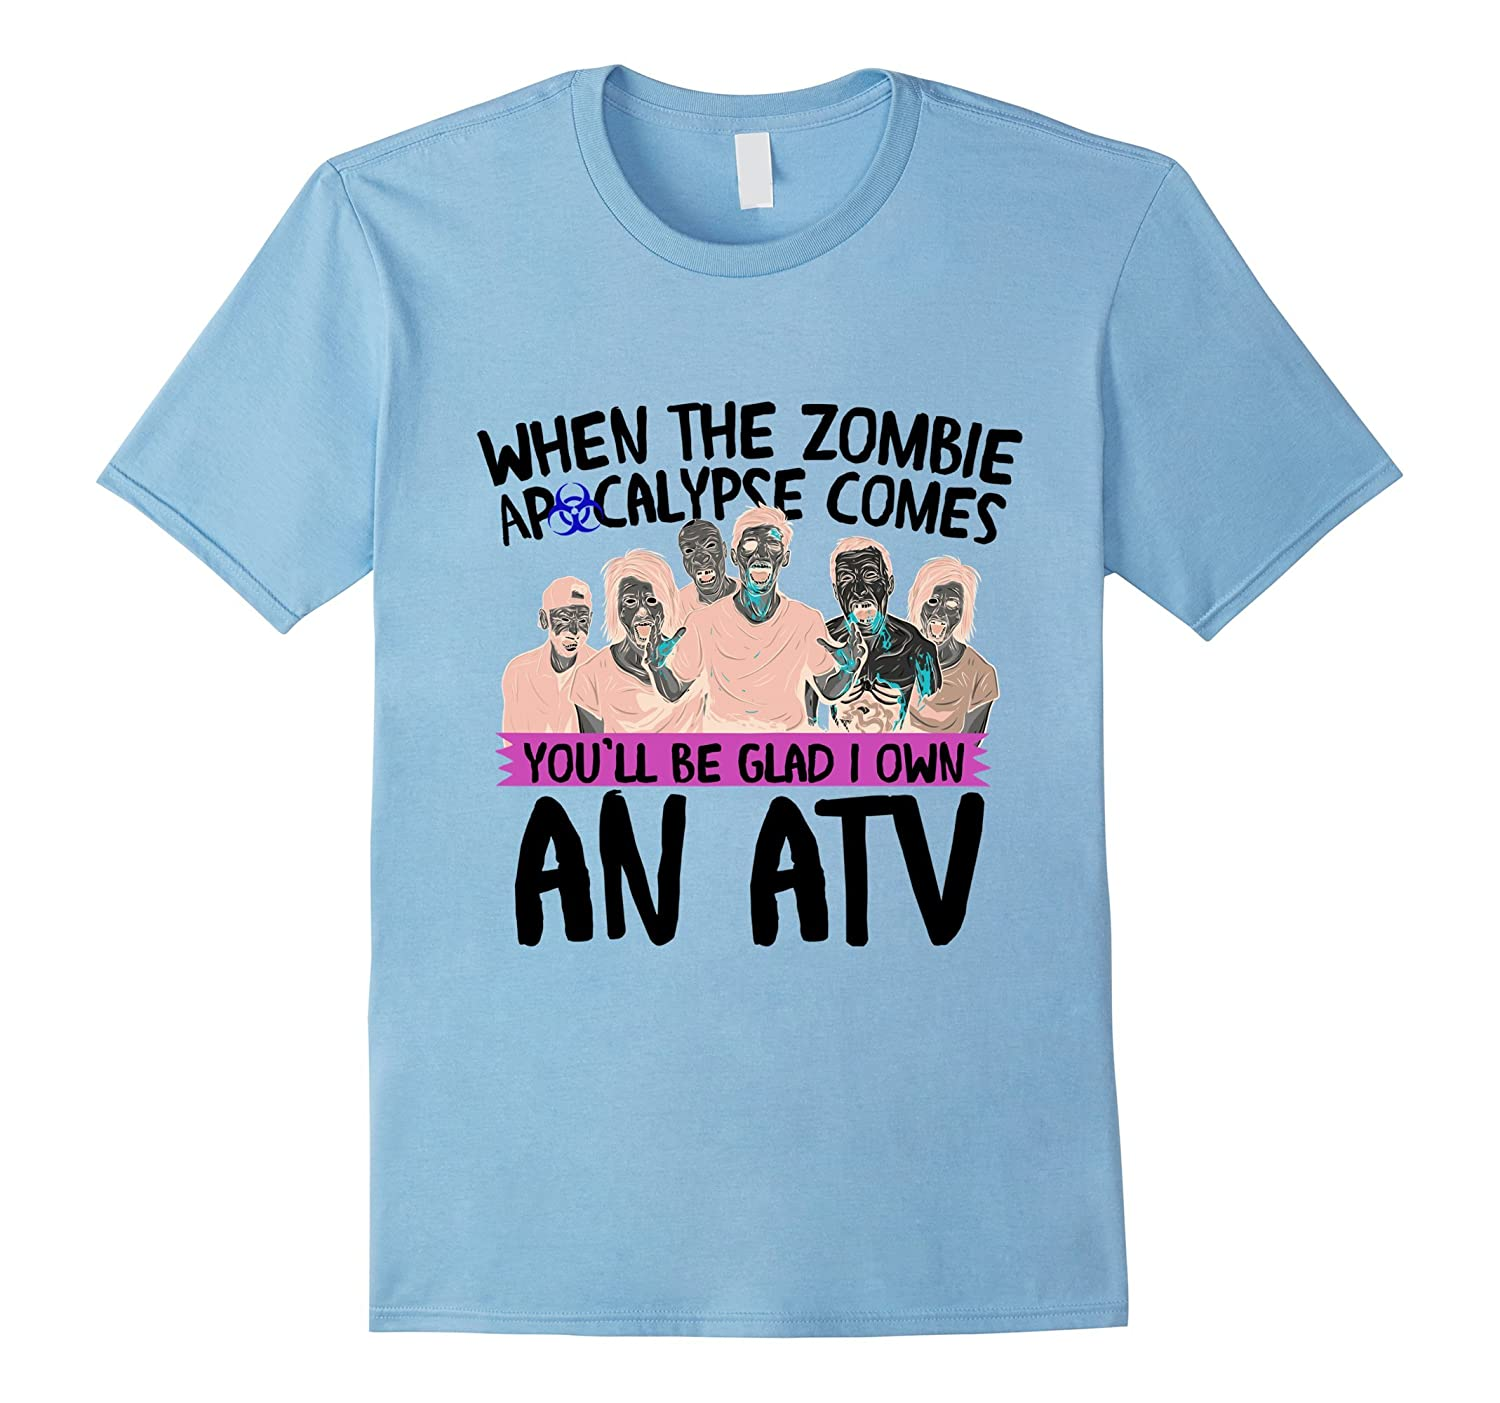 Zombie T-shirt When Apocalypse Comes You Glad I Own an ATV-TH